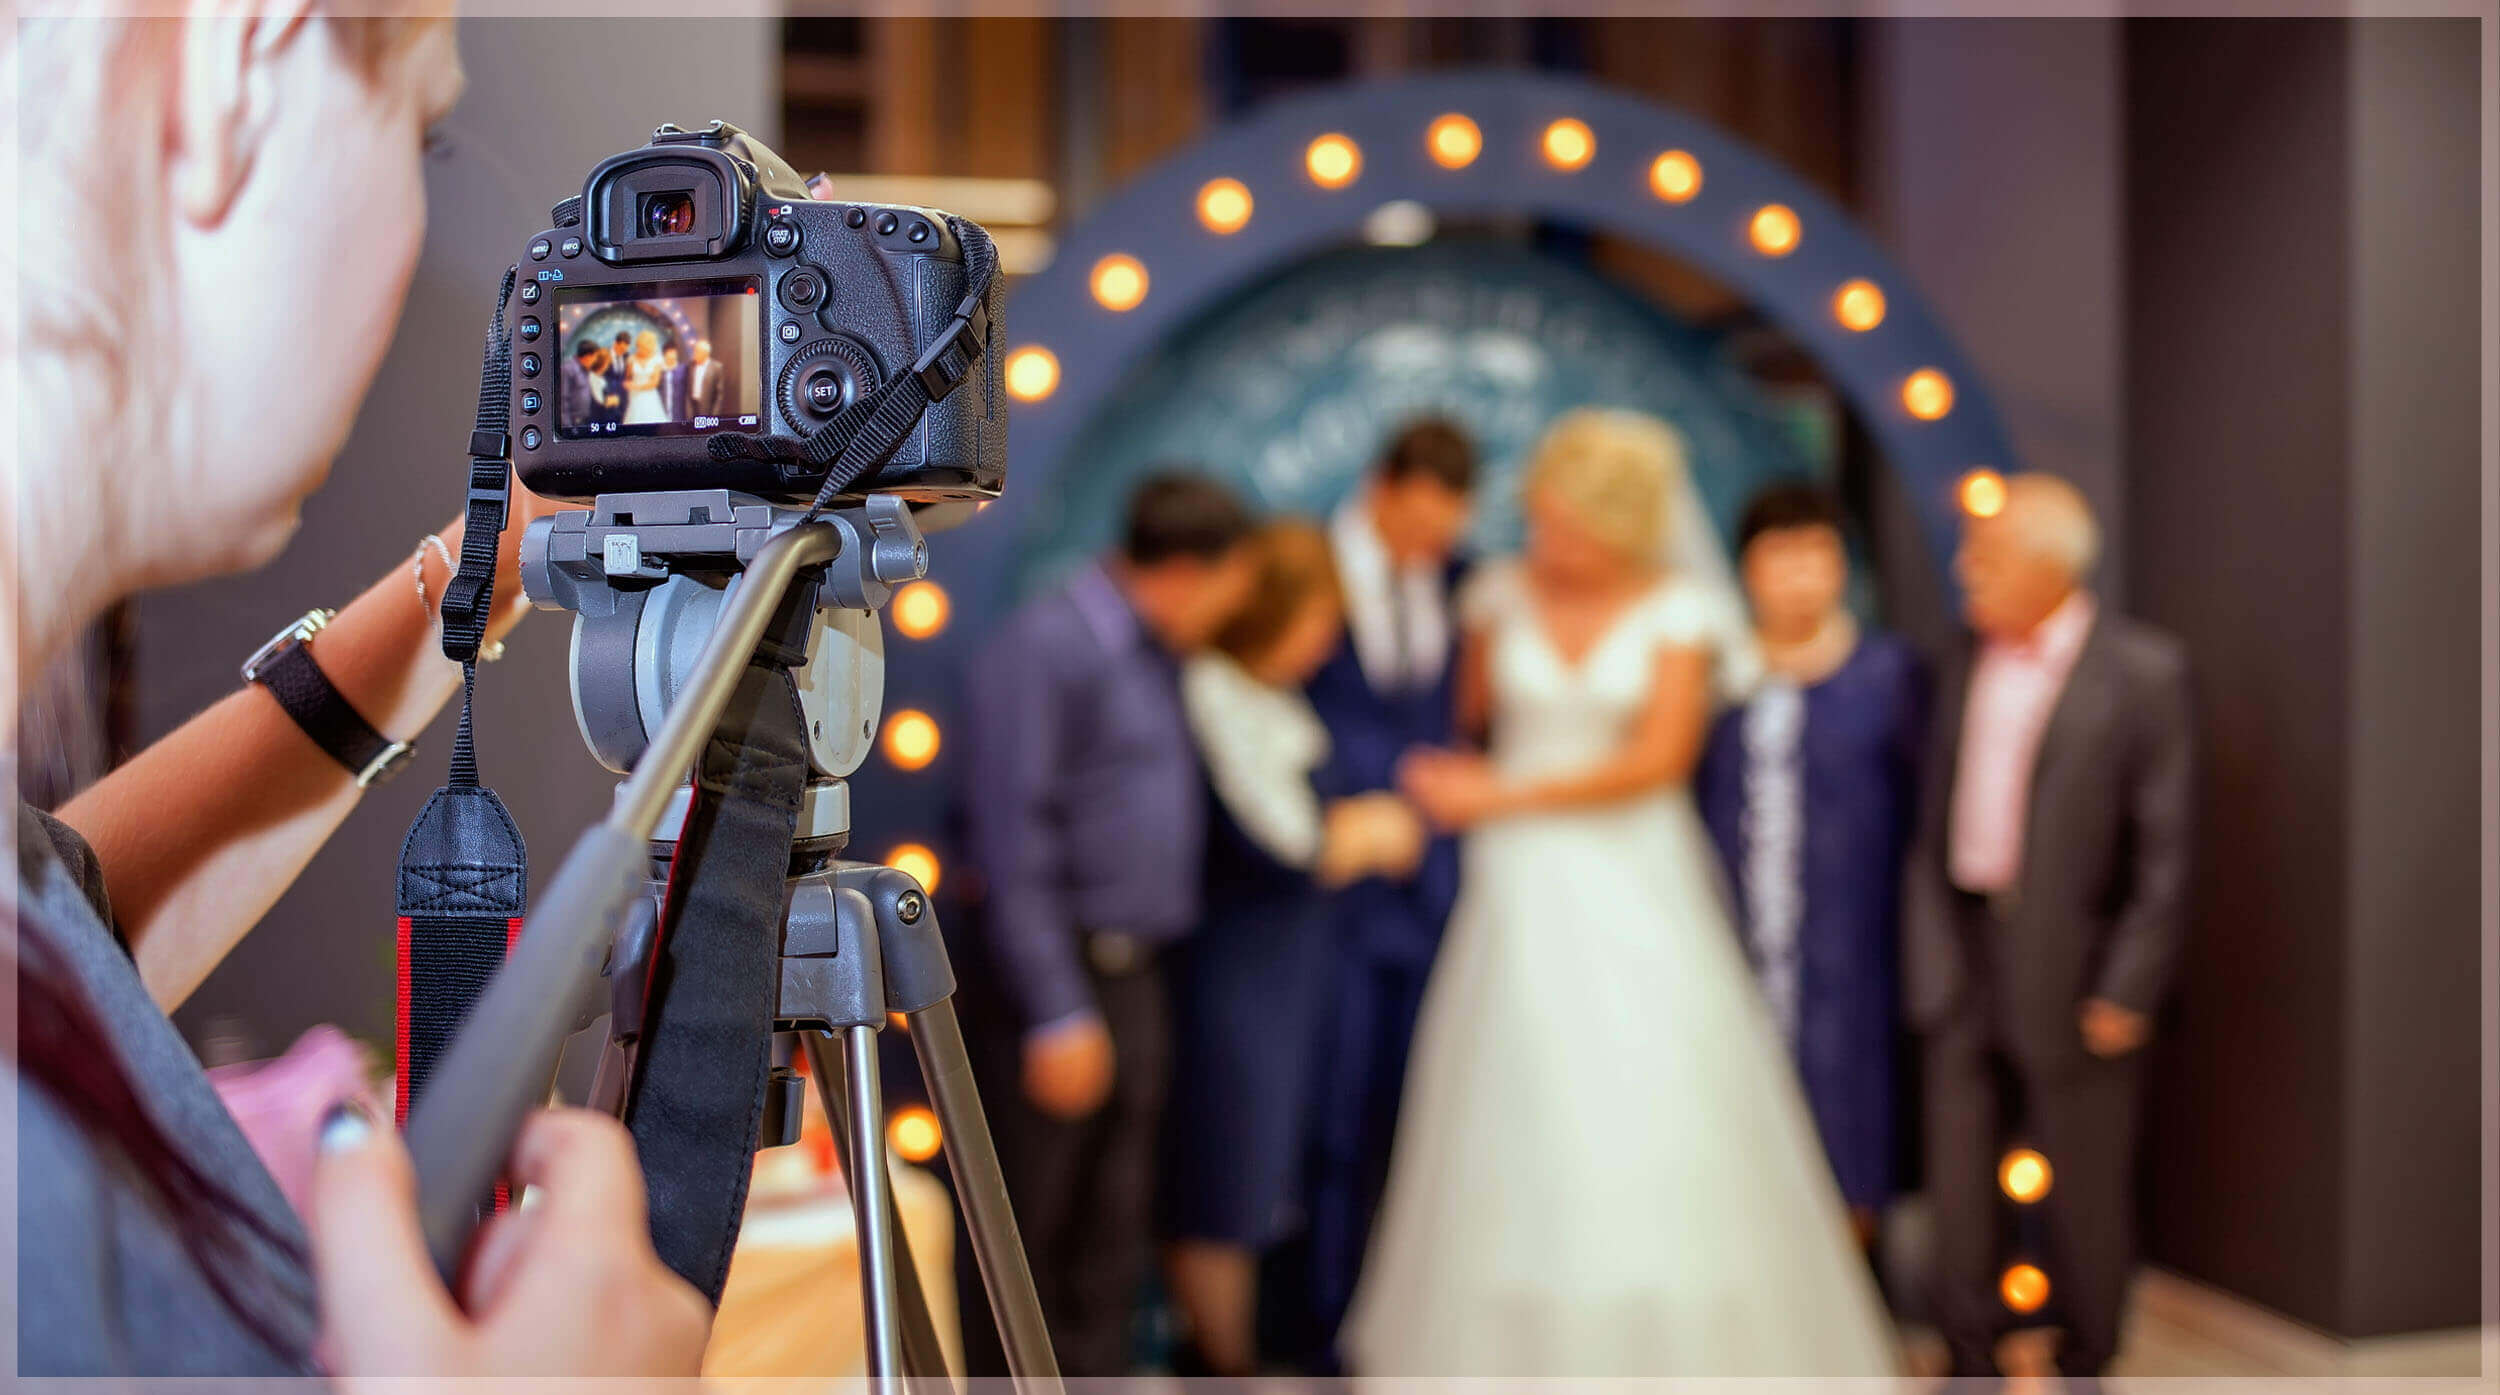 Wedding Photos in low light- use of a tripod